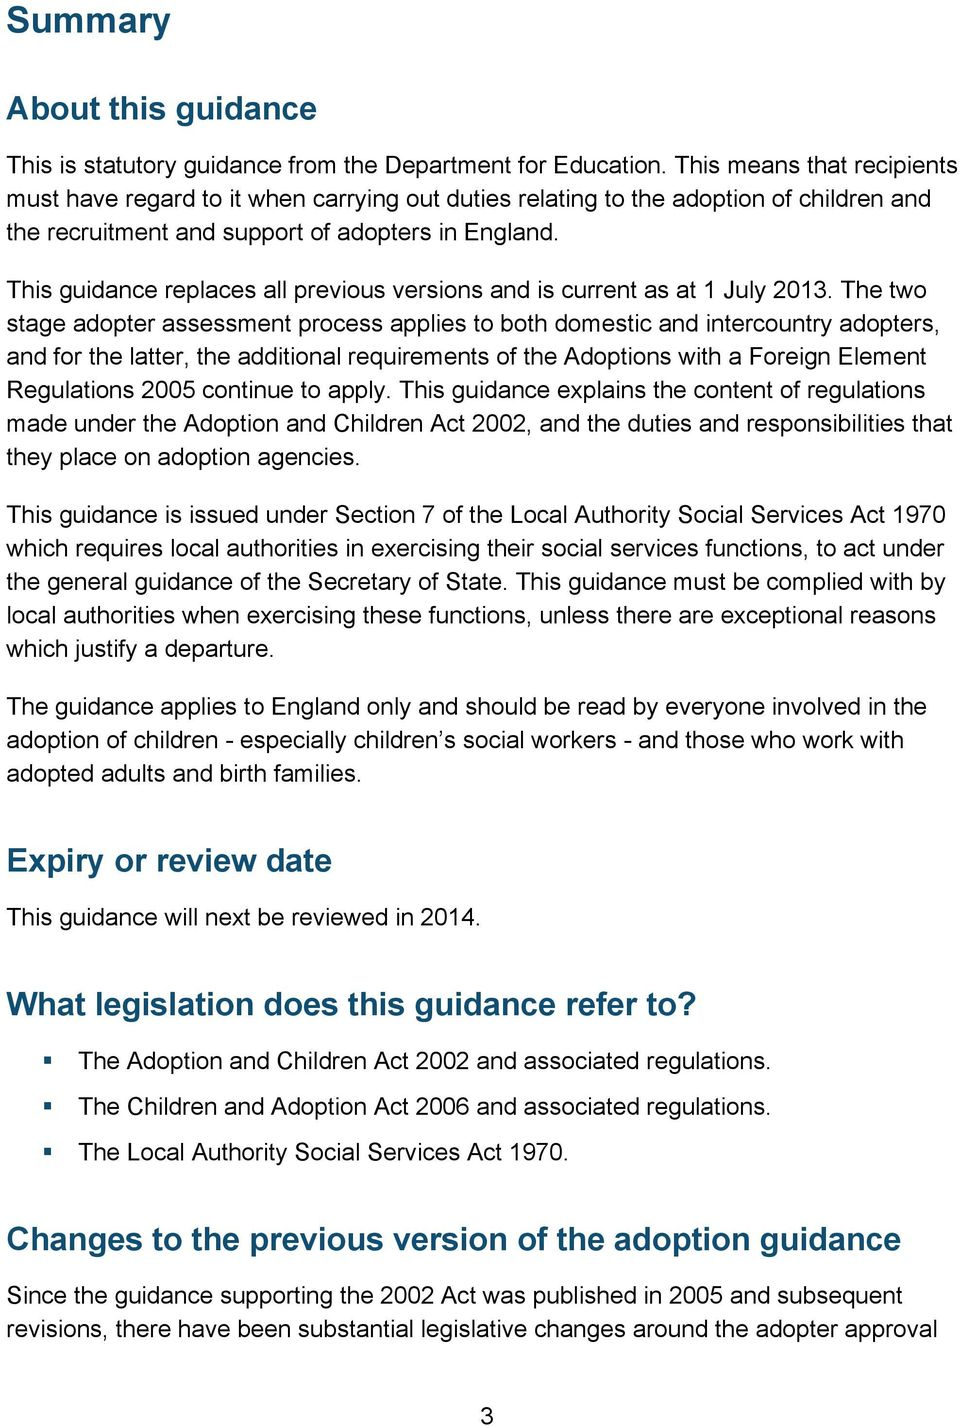 This guidance replaces all previous versions and is current as at 1 July 2013.